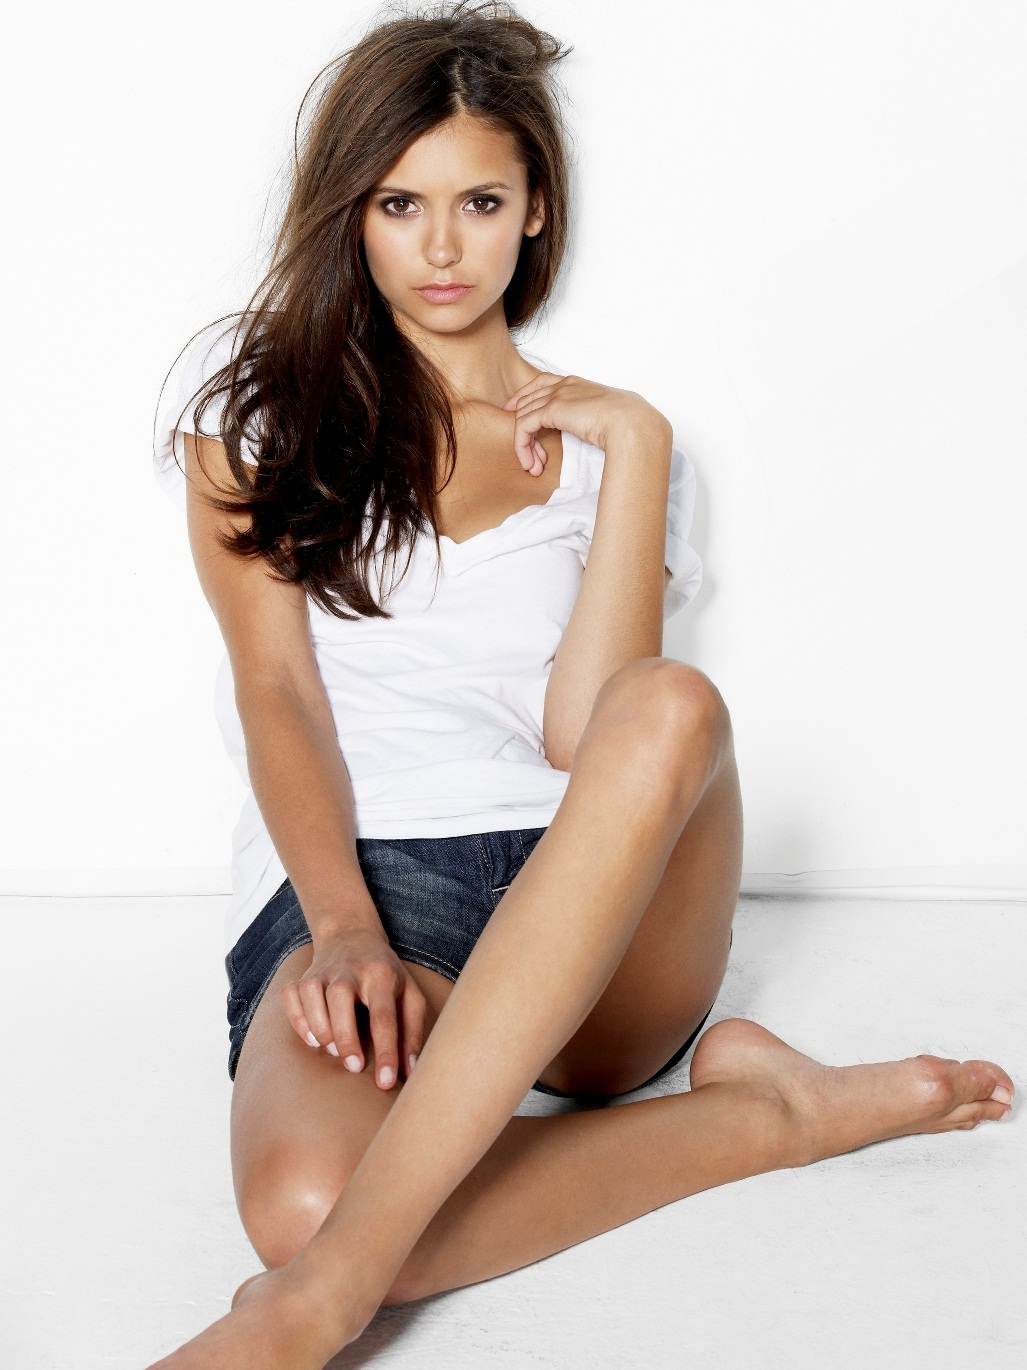 NINA DOBREV : MOST BEAUTIFUL YOUNG ACTRESS